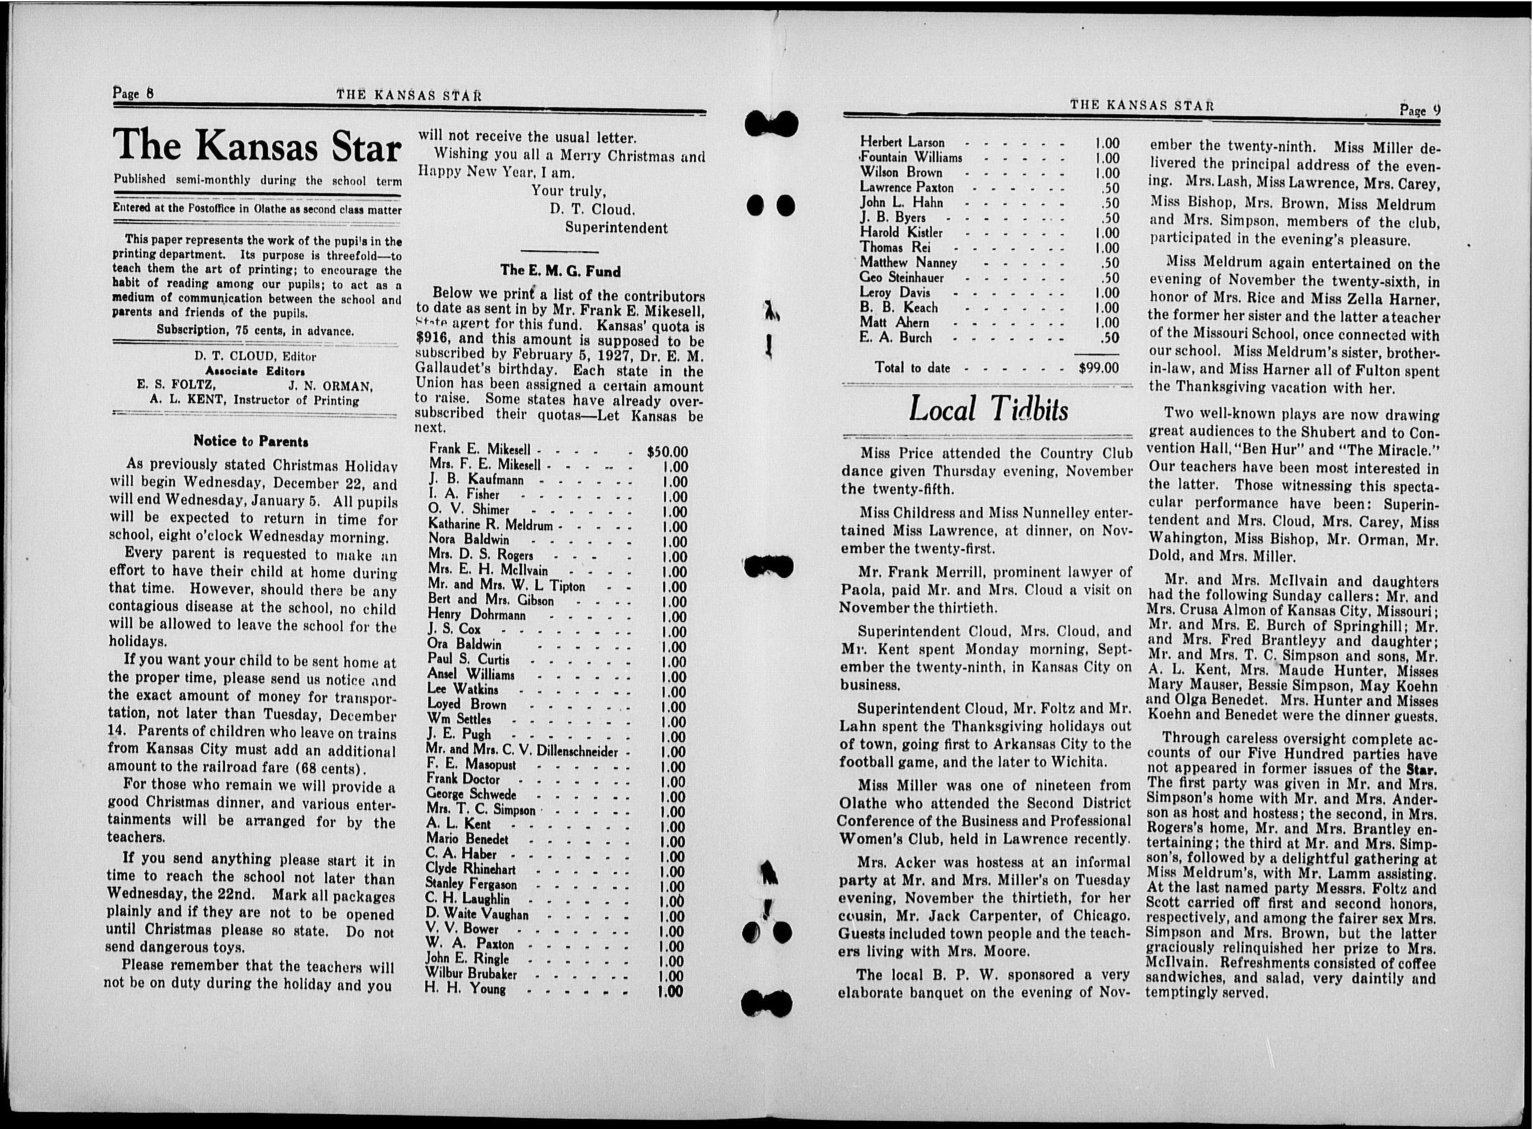 The Kansas Star, volume 50, number 6 - 8-9